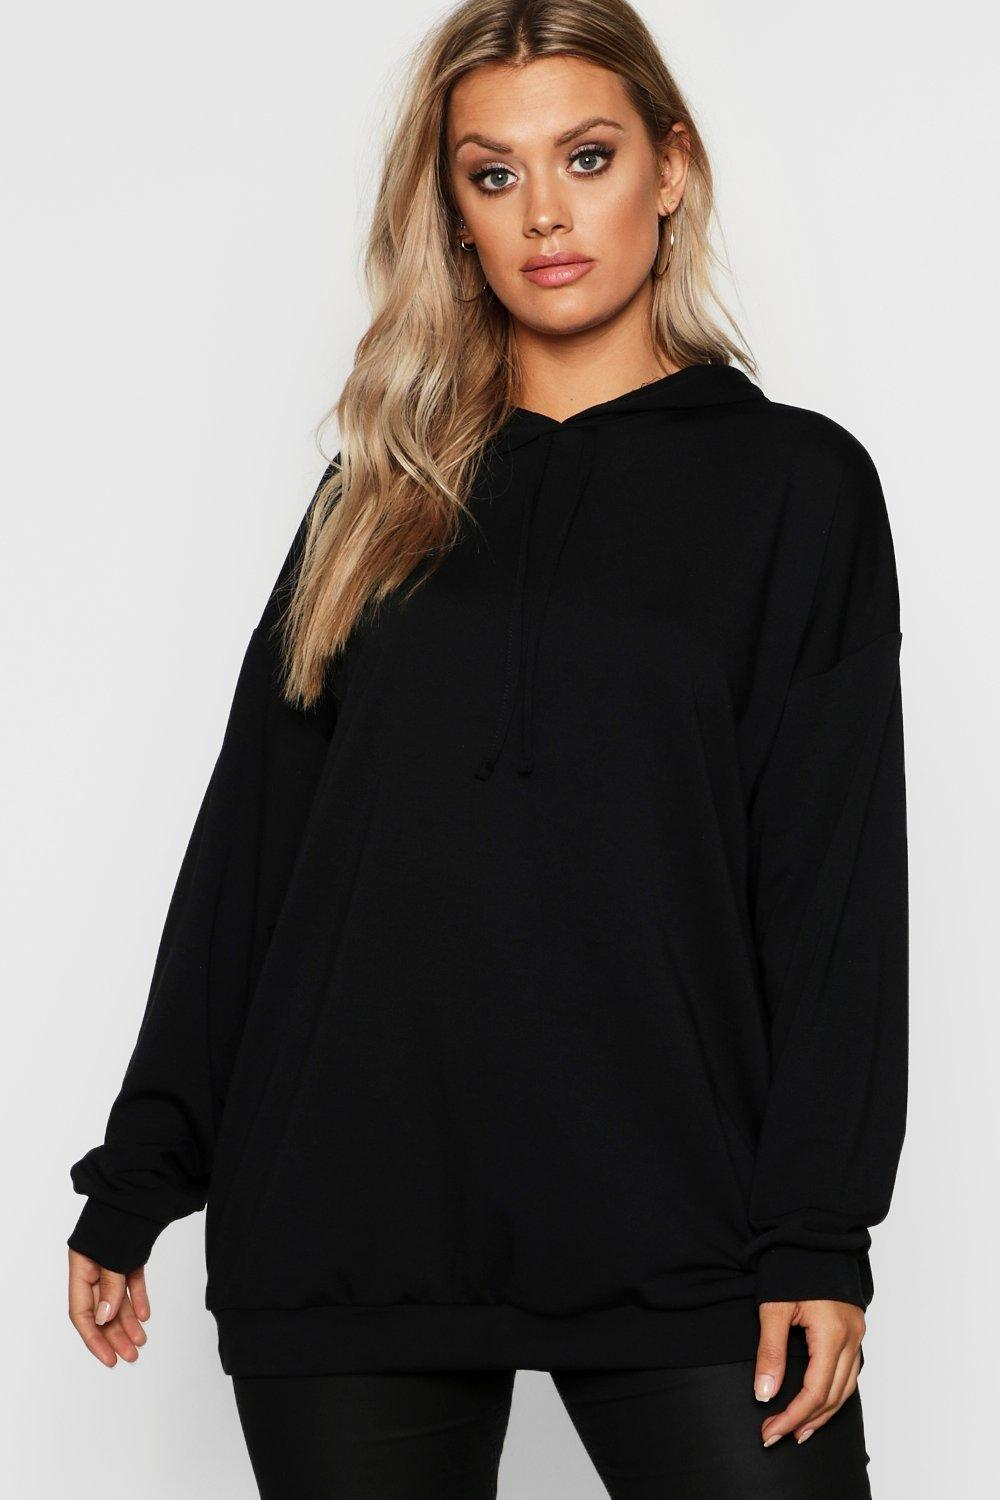 boohoo Womens Plus Oversized Hoody - Black - 20, Black